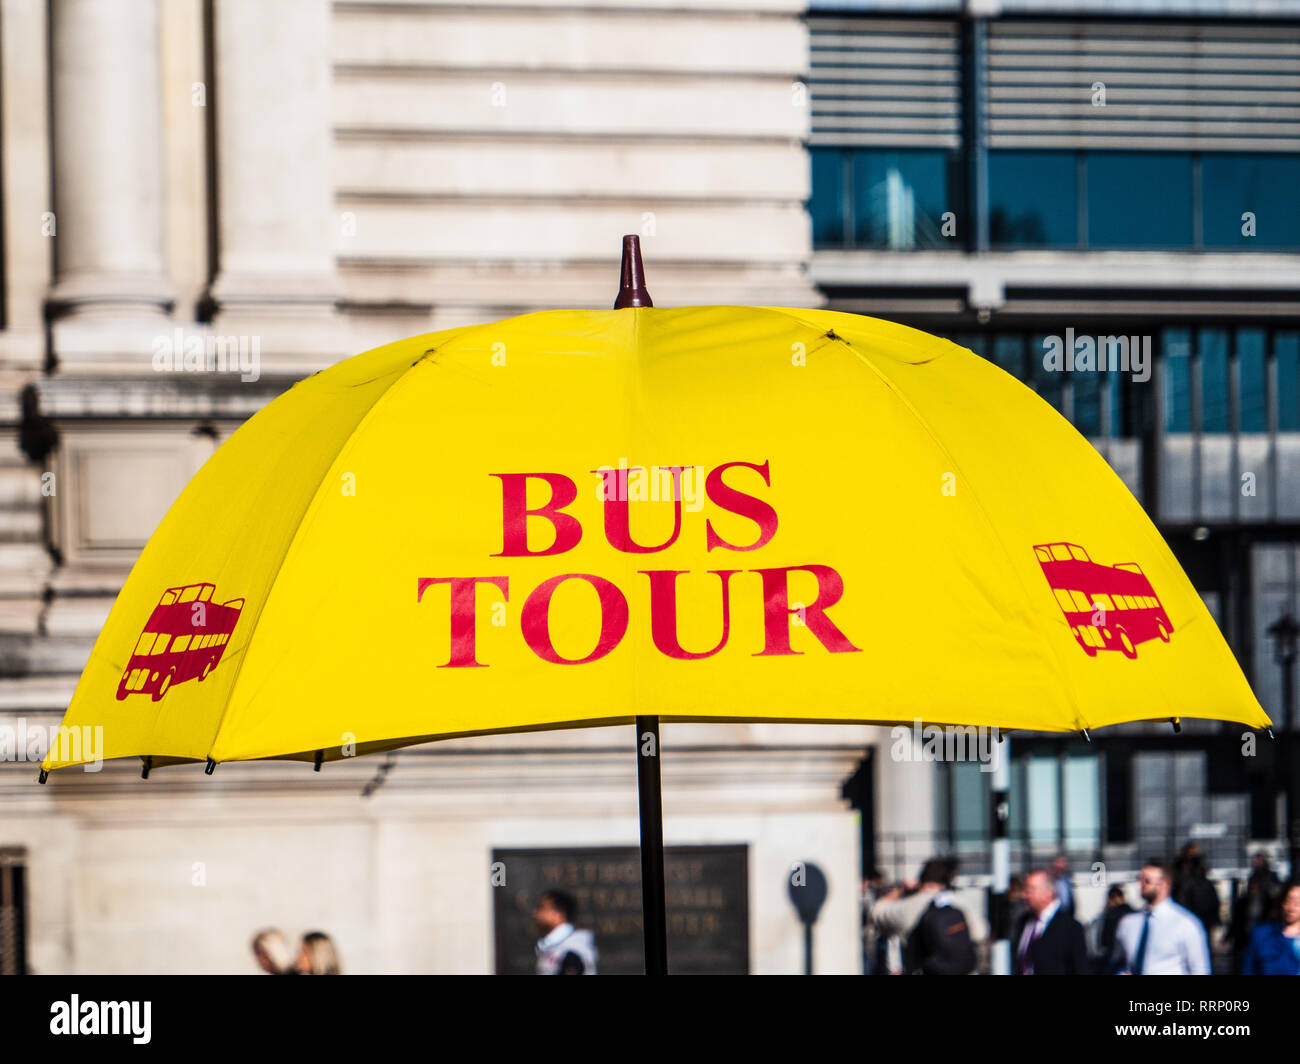 London Tourist Bus Tours - Yellow Umbrella marking a ticket stall for London Tour Bus tickets - Stock Image